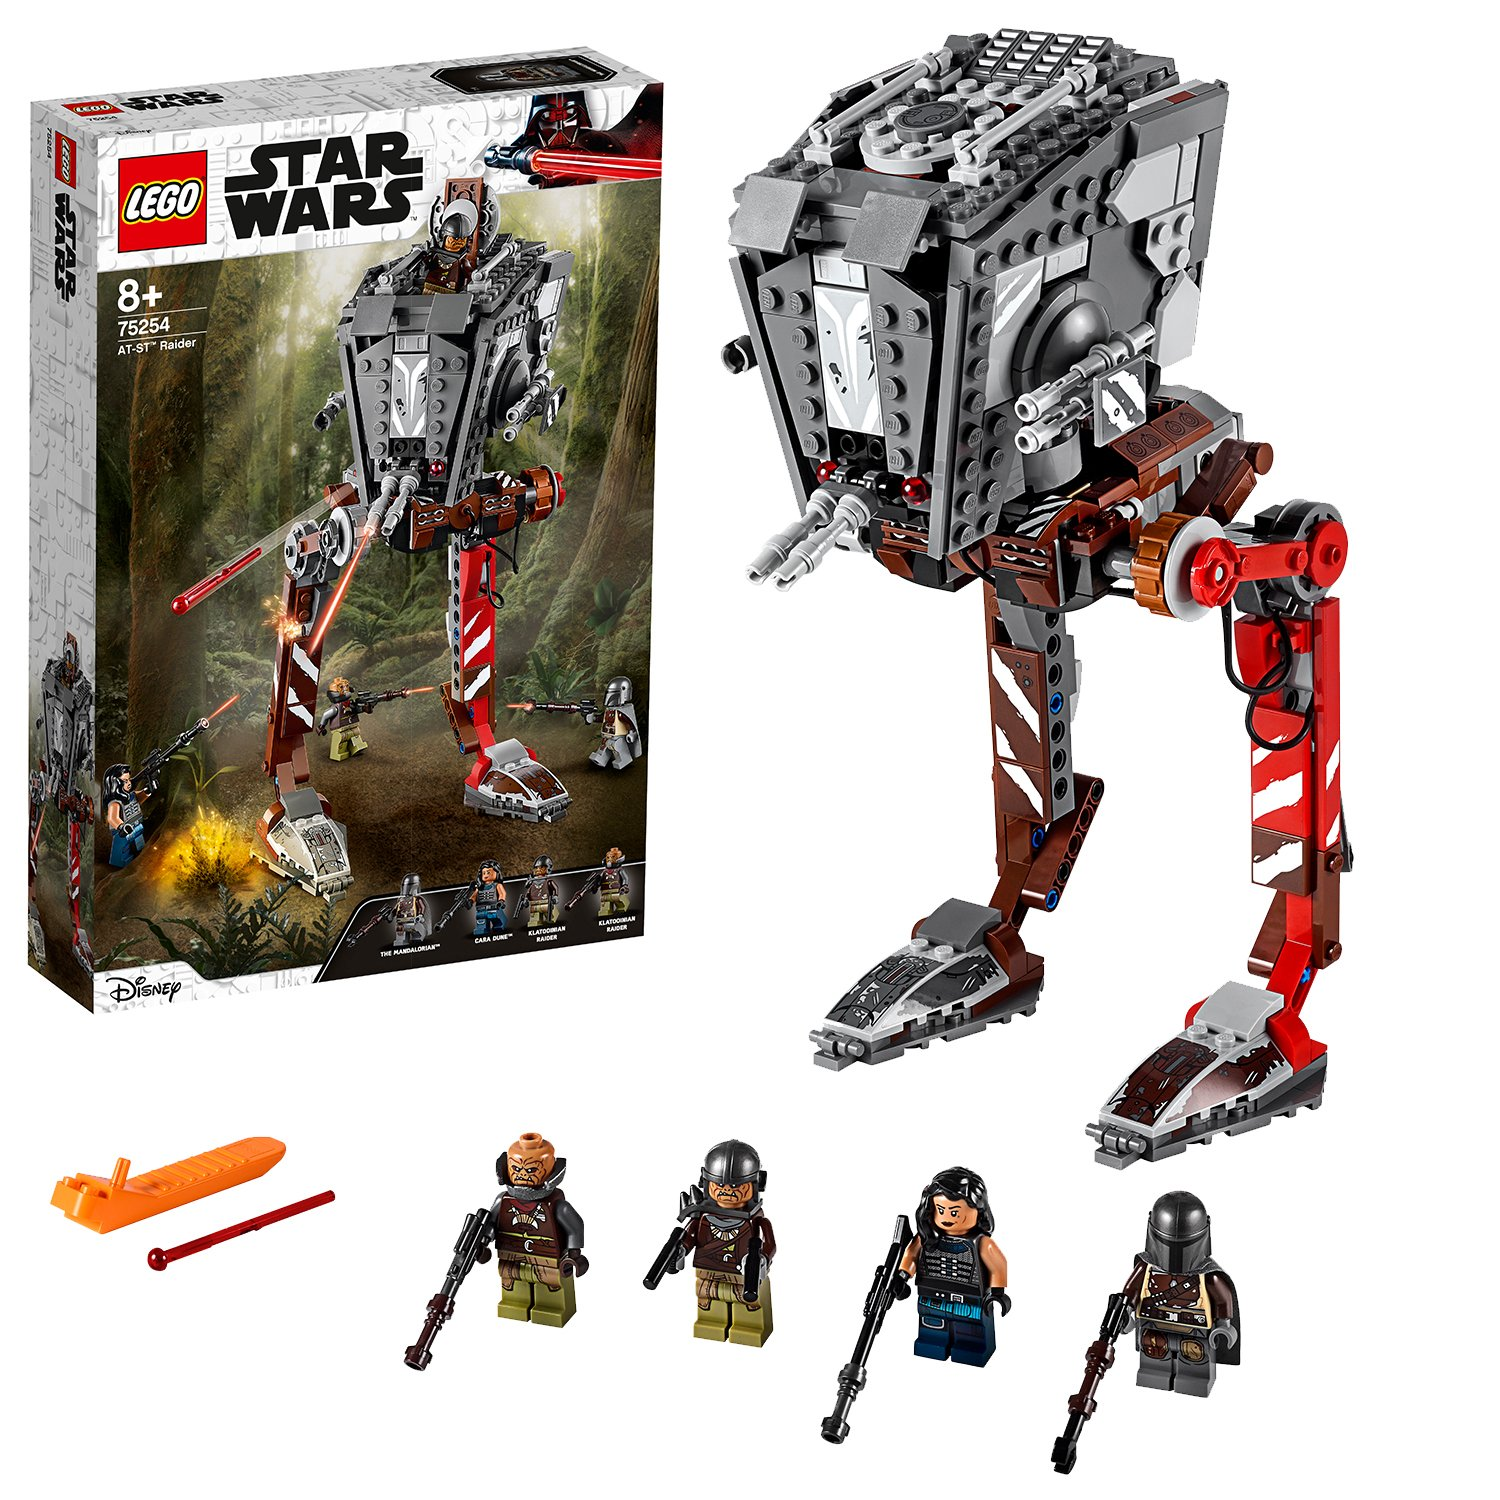 LEGO Star Wars Mandalorian AT-ST Raider Set - 75254